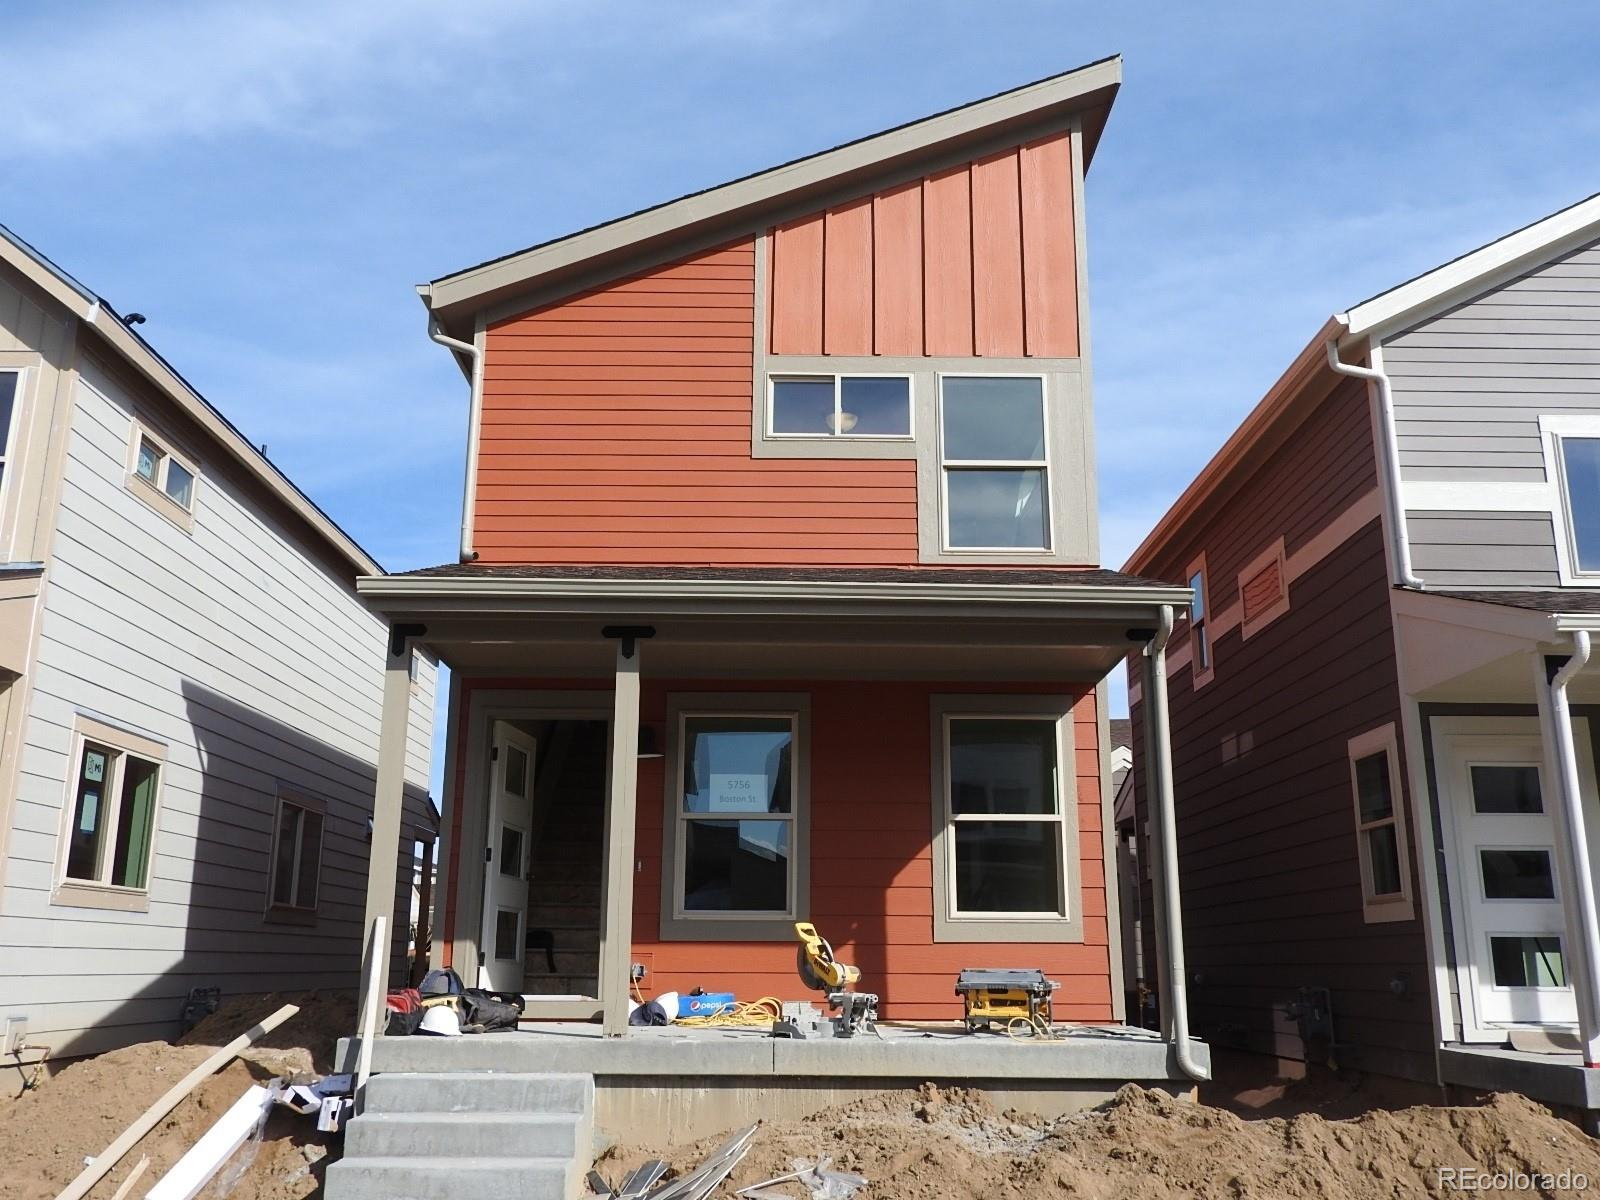 MLS# 7966461 - 1 - 5756 Boston Street, Denver, CO 80238